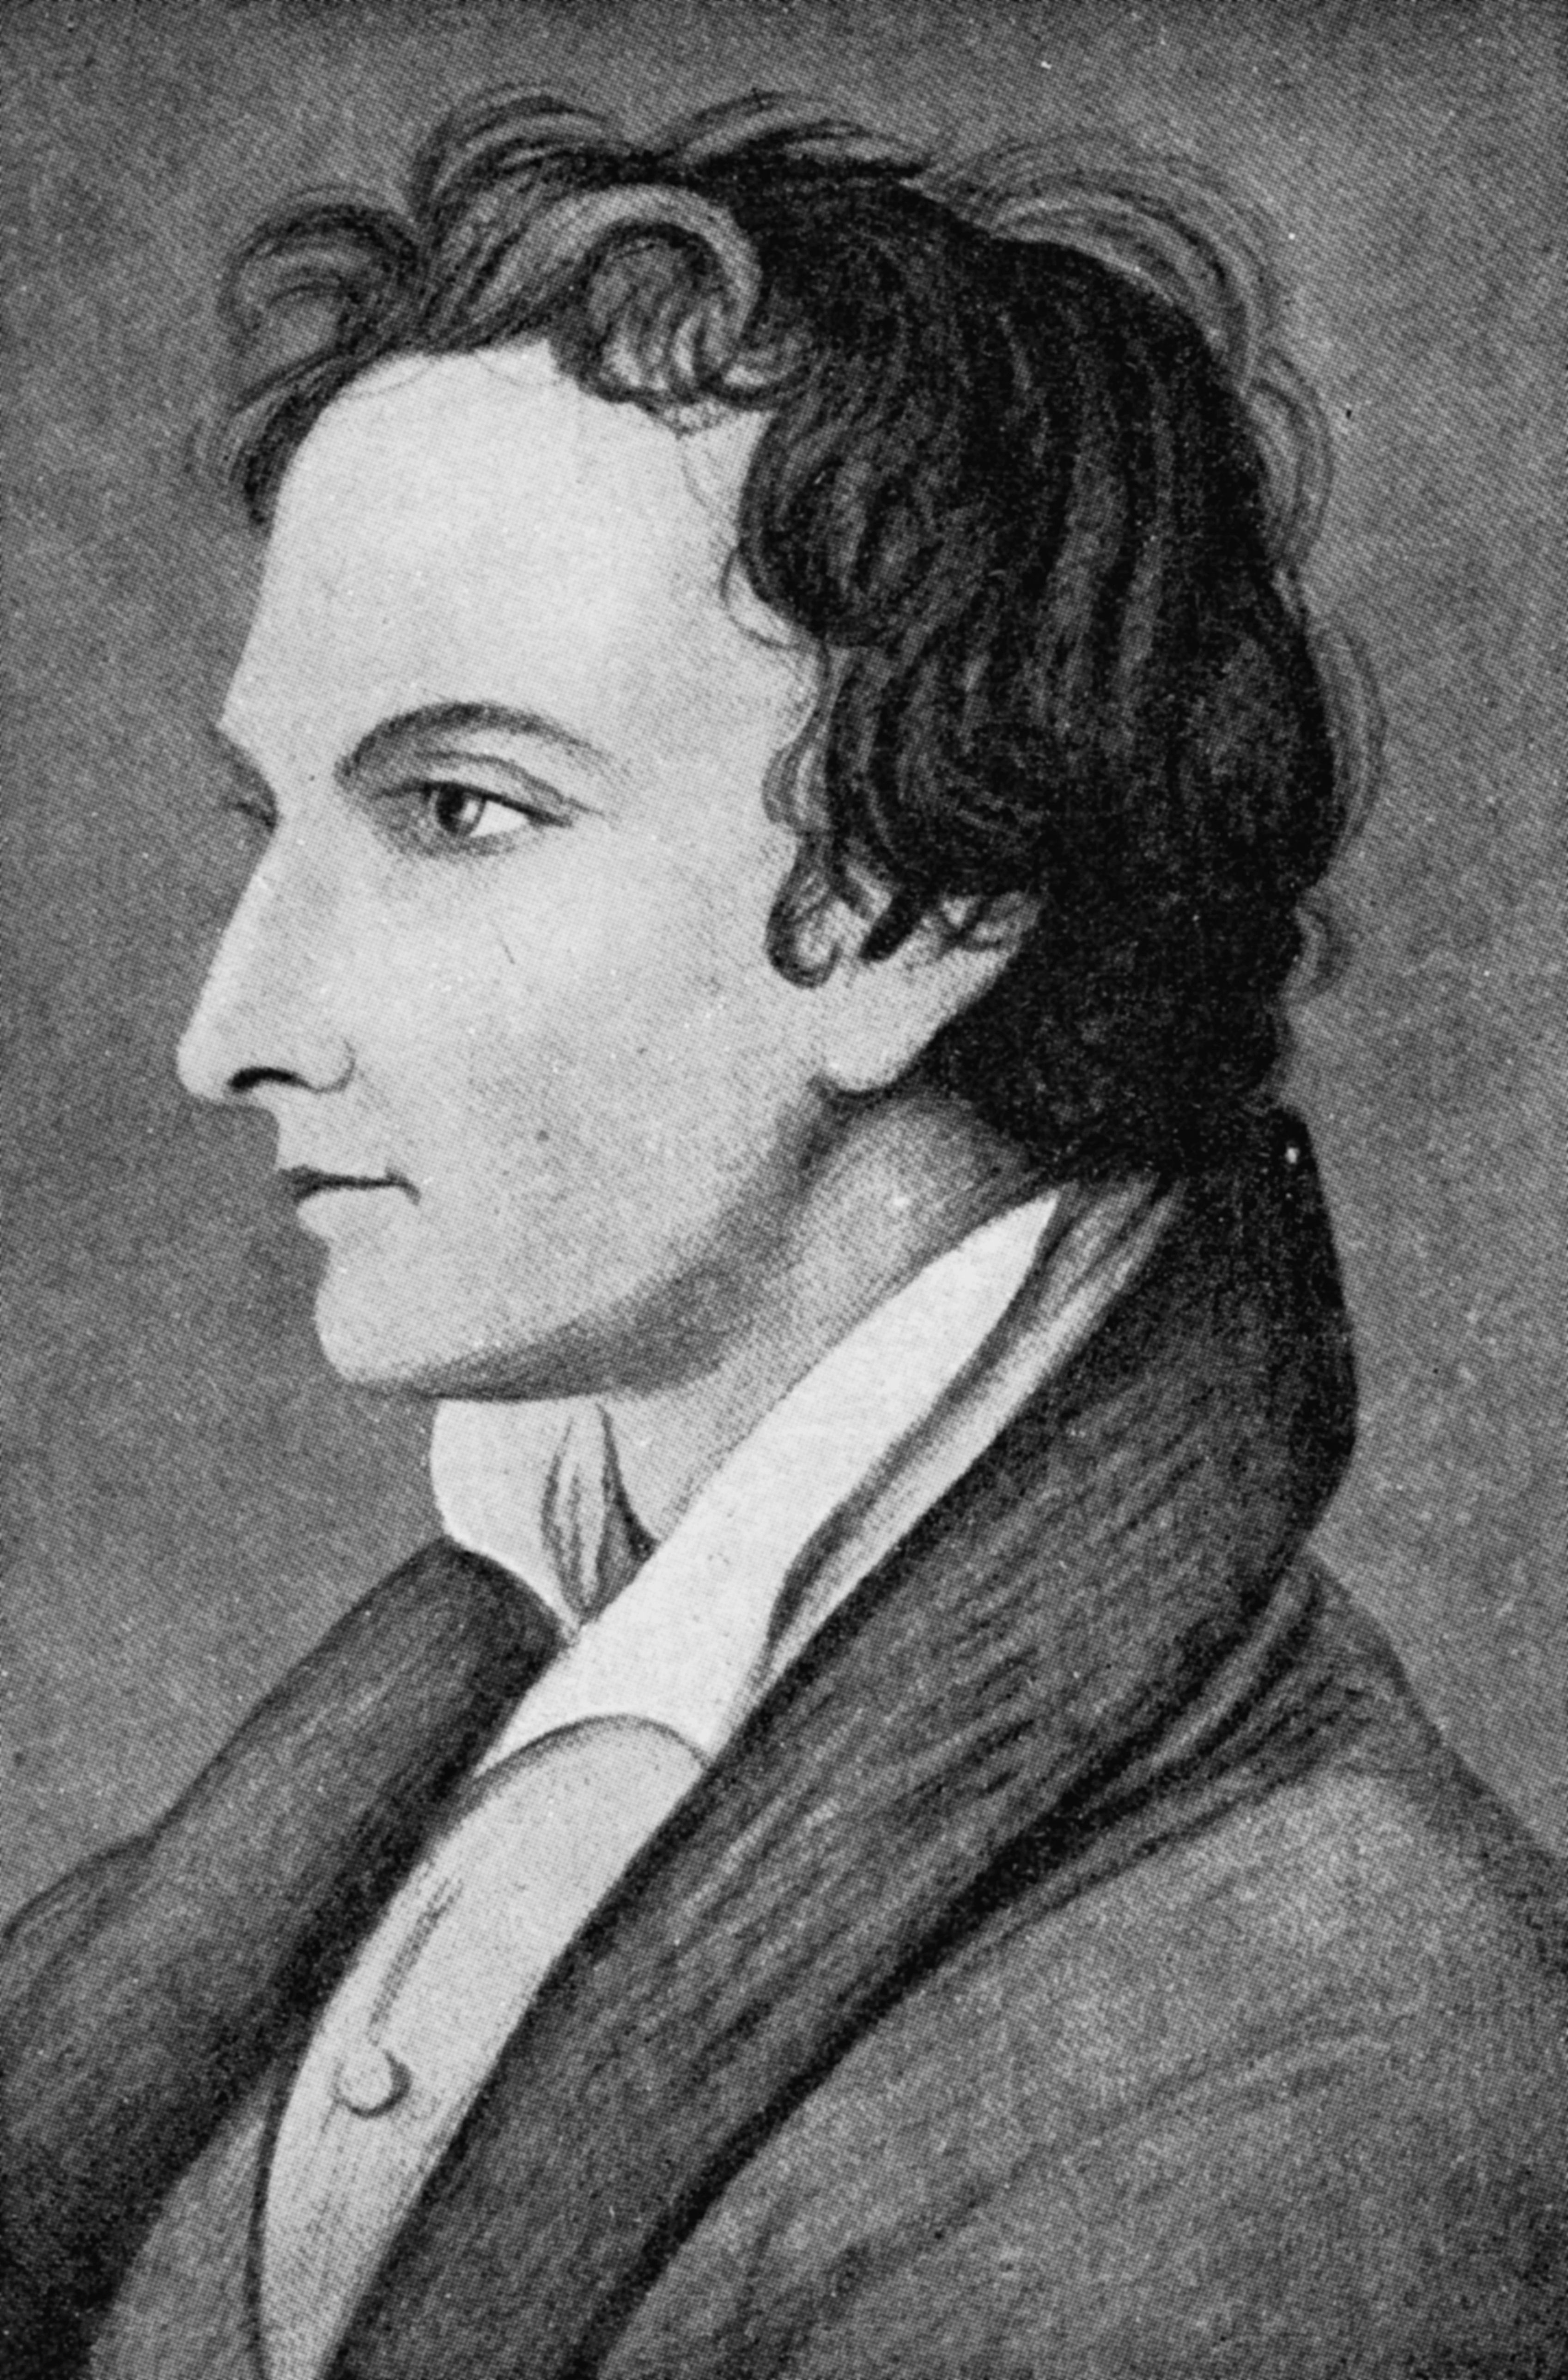 lamb as a personal essayist Charles lamb - charles lamb was an english essayist, poet, and antiquarian, best known for  charles lamb as a personal essayist - 1847 words - by charles lamb.